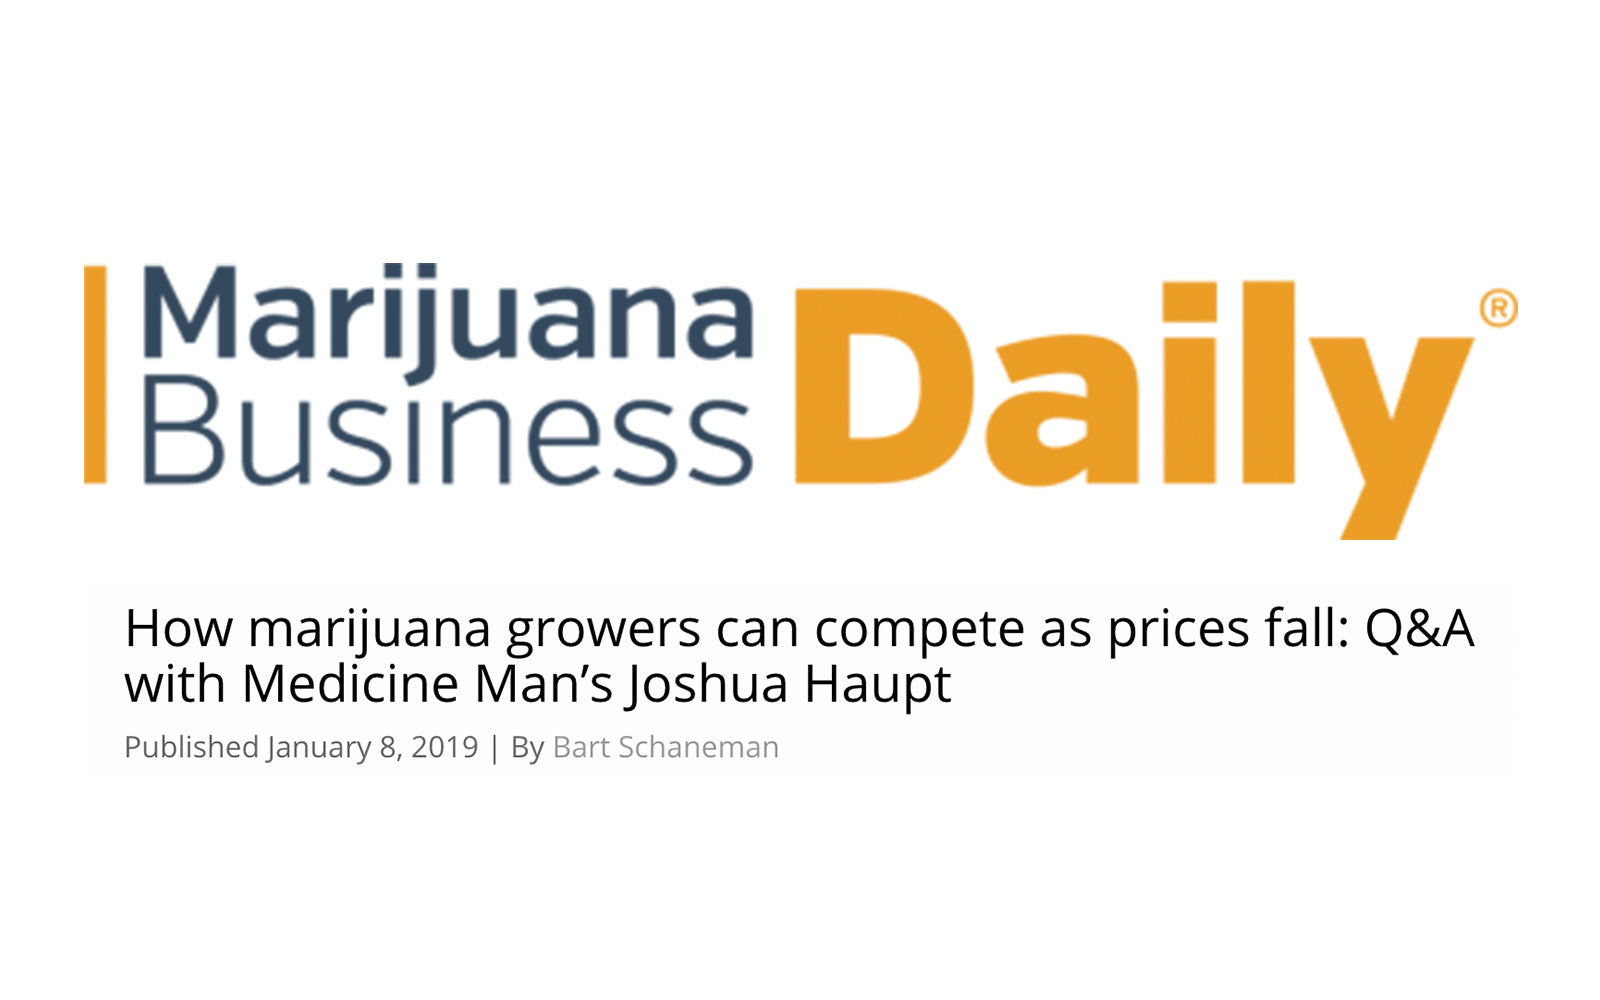 How marijuana growers can compete as prices fall: Q&A with Medicine Man's Joshua Haupt